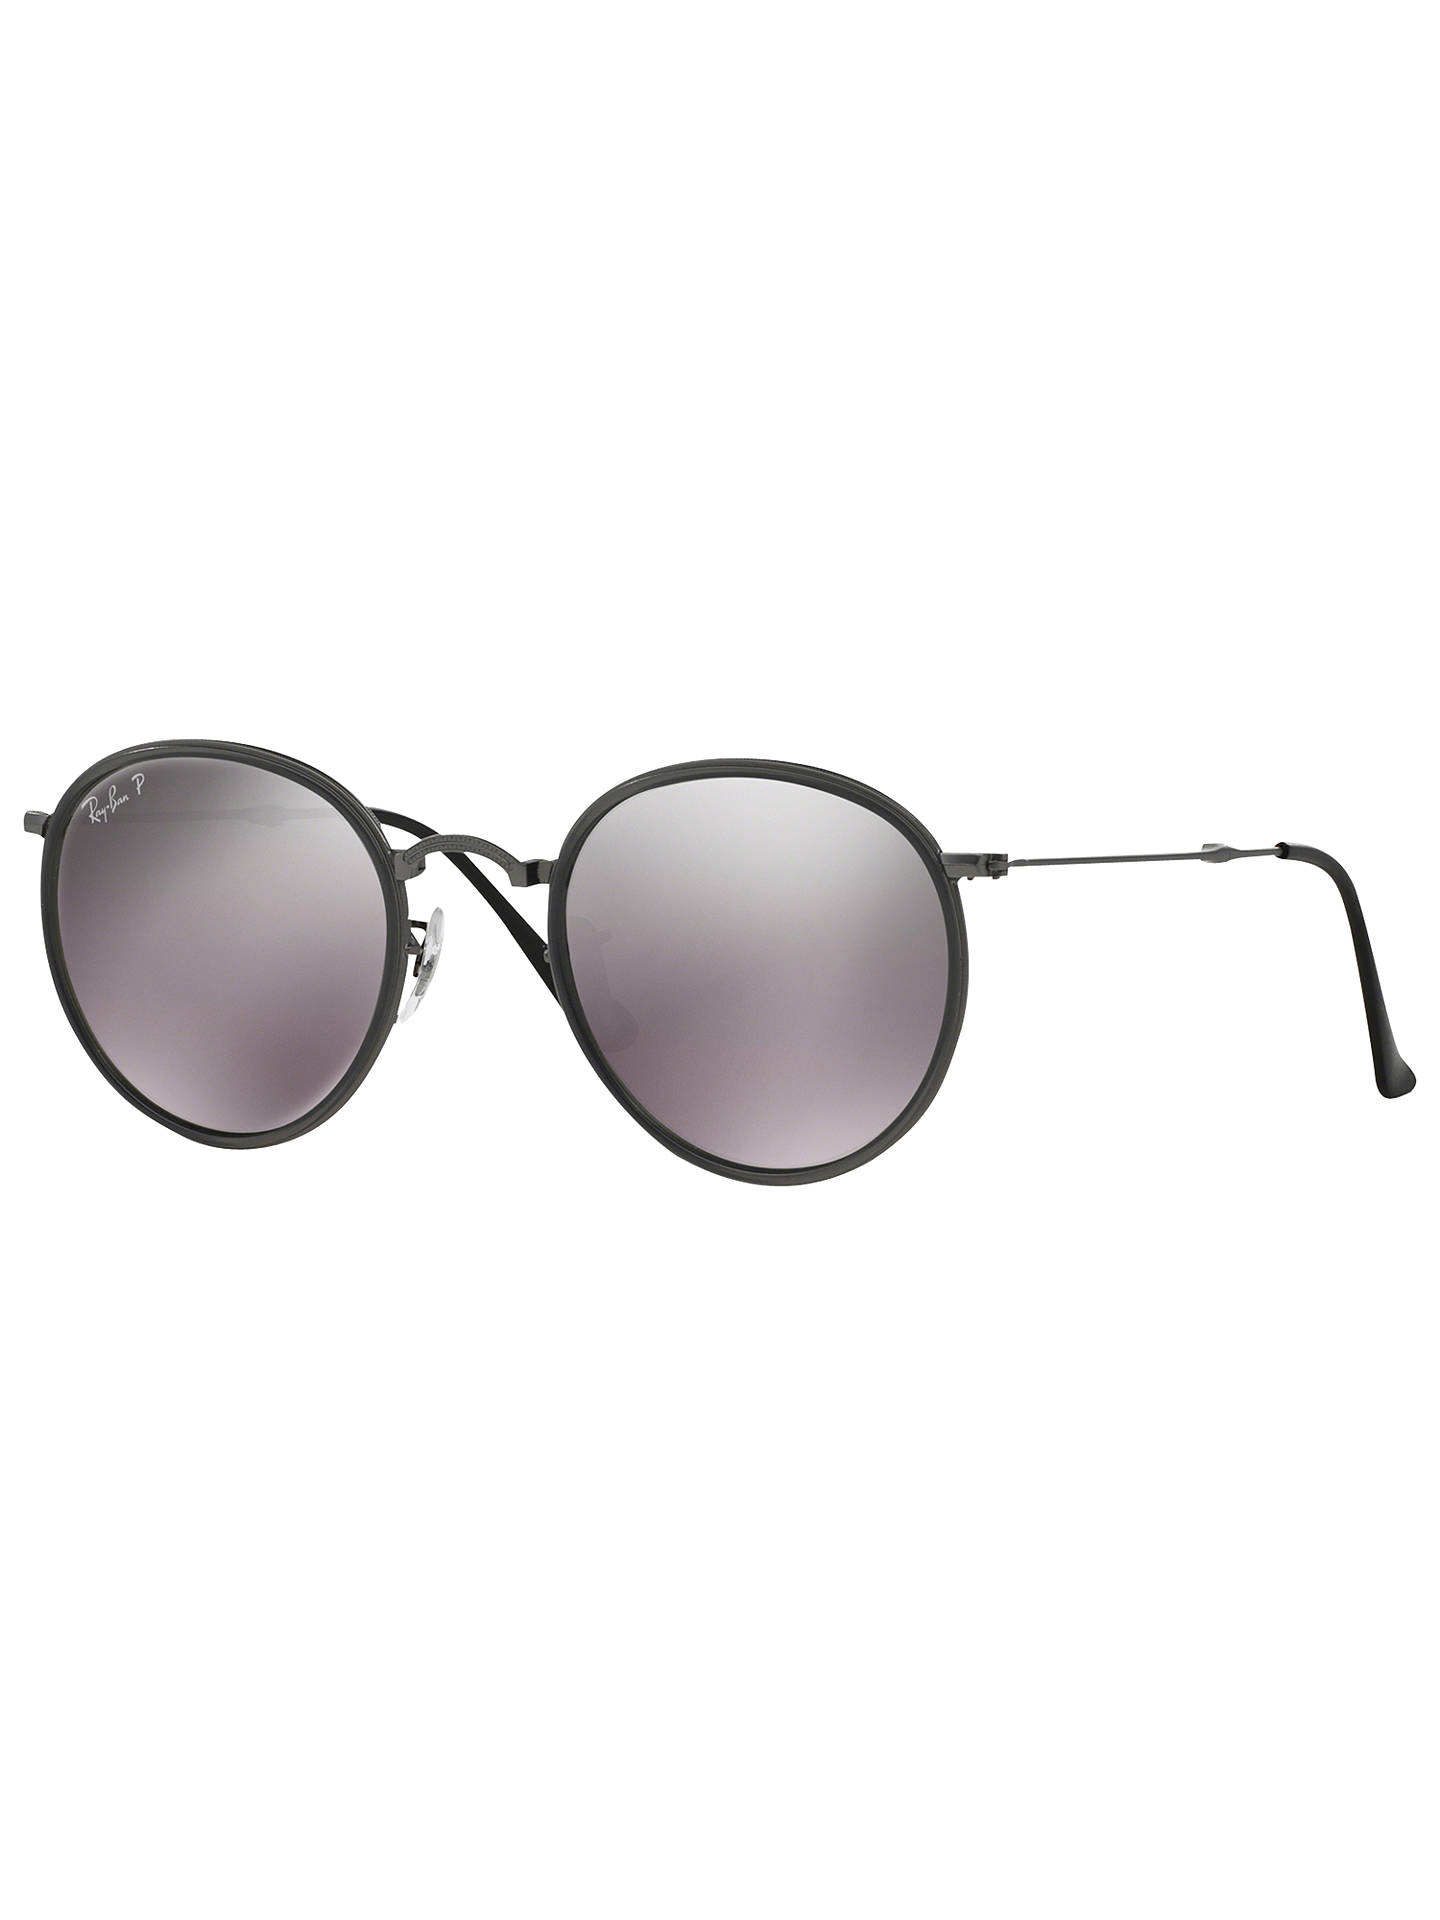 ddcc9d95d82e Buy Ray-Ban RB3517 Polarised Round Folding Sunglasses, Gunmetal/Silver  Gradient Online at ...